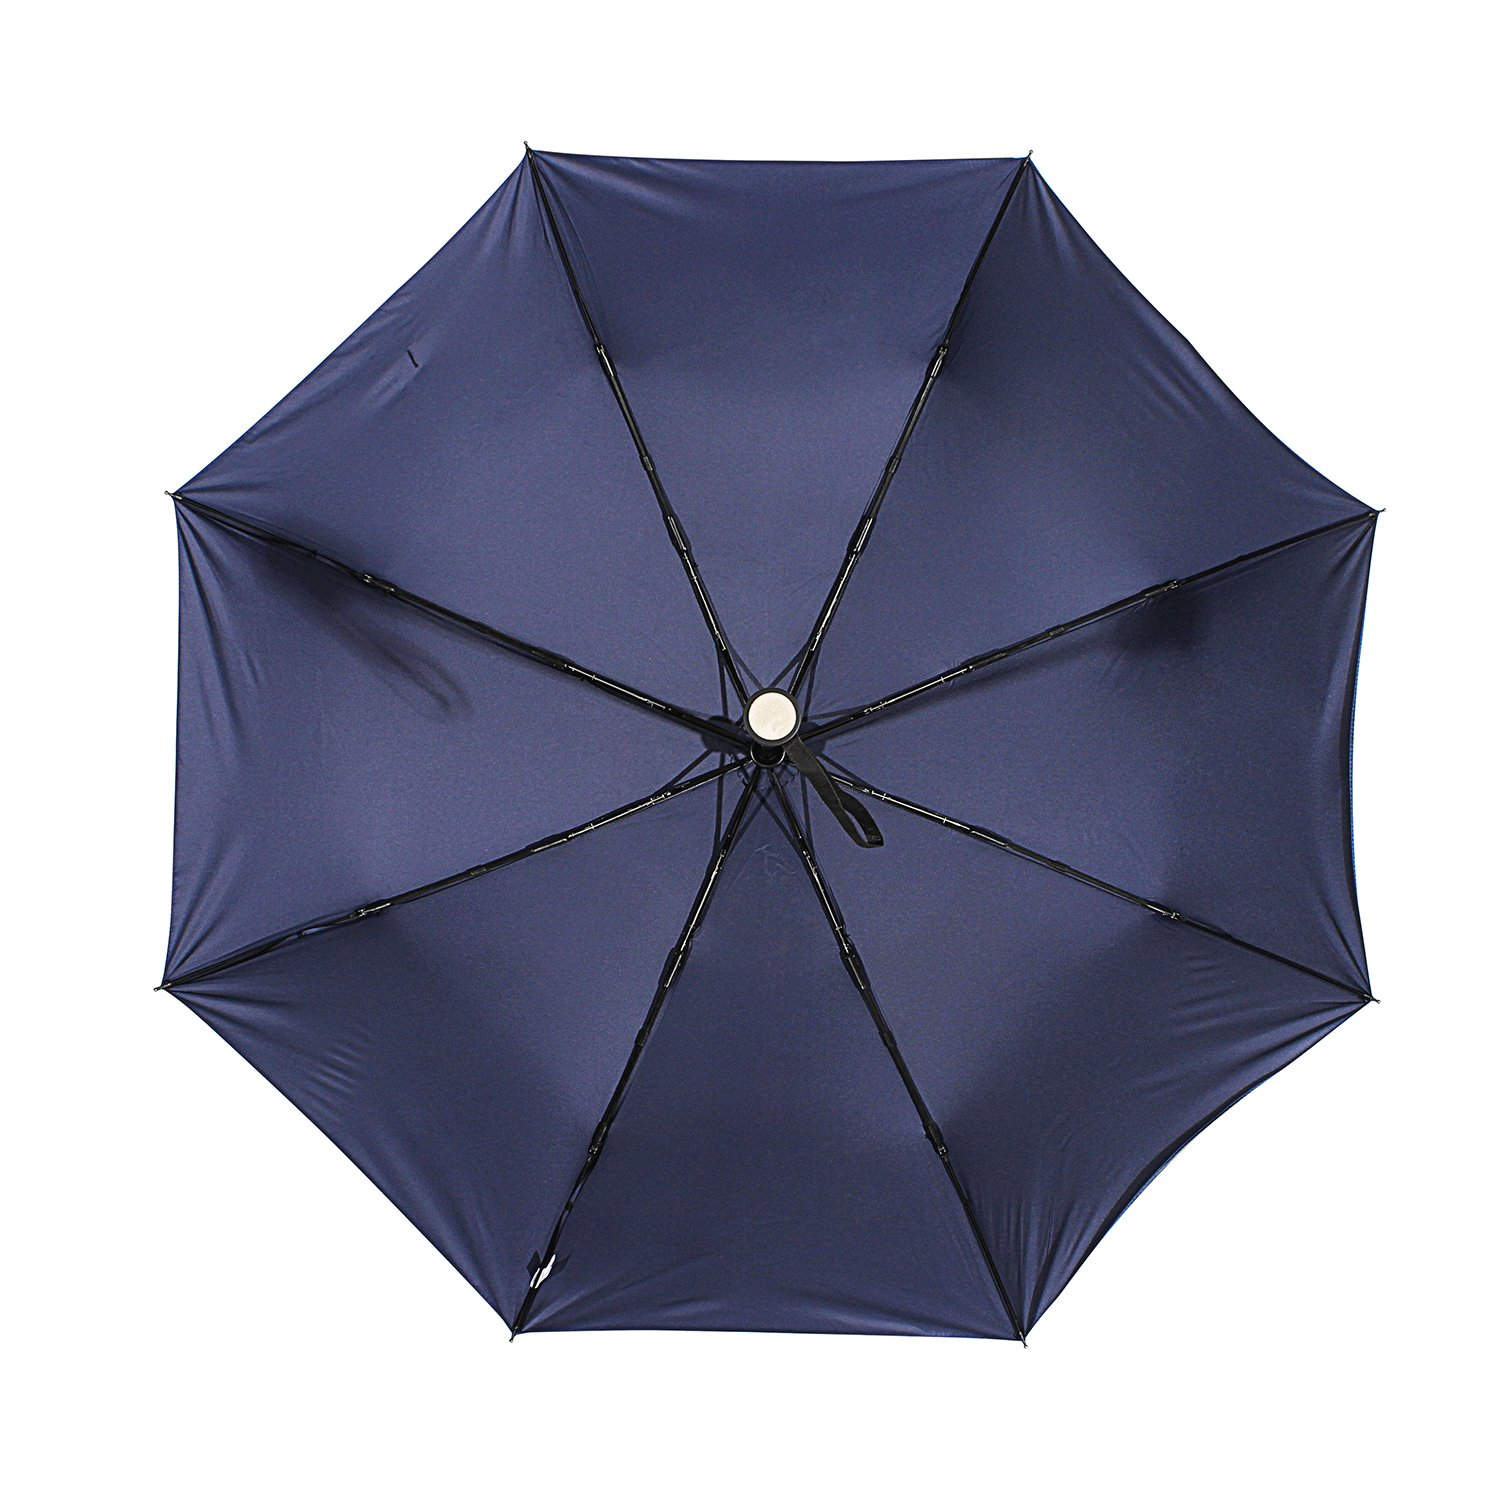 Amazon.com : molshine Automatic Windproof Travel Umbrella-Compact Folding Lightweight Portable Parasol Umbrella for Women, Gift Choice (Dark Blue) : Sports ...